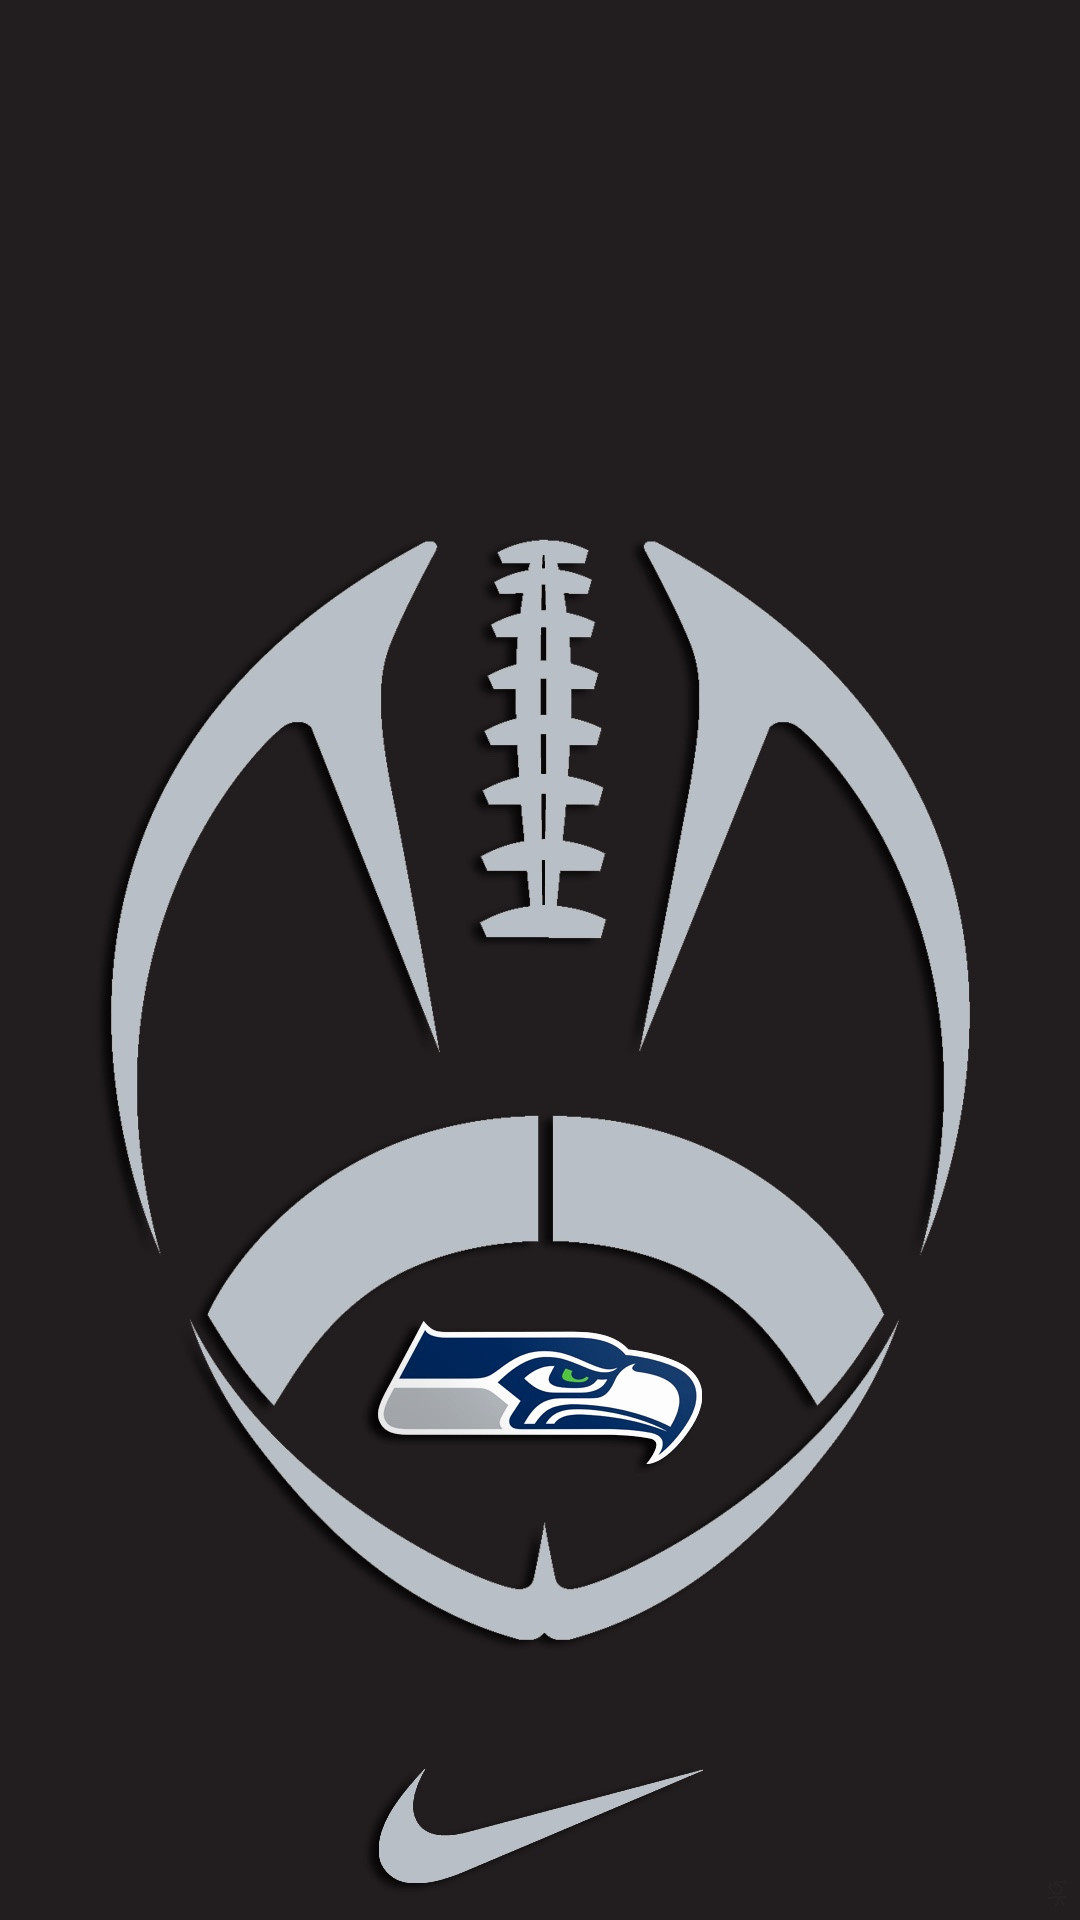 1080x1920  Seattle Seahawks Wallpaper Luxury Seahawks iPhone 6 Plus Wallpaper  · 0 · Download · Res: 1633x2900 ...